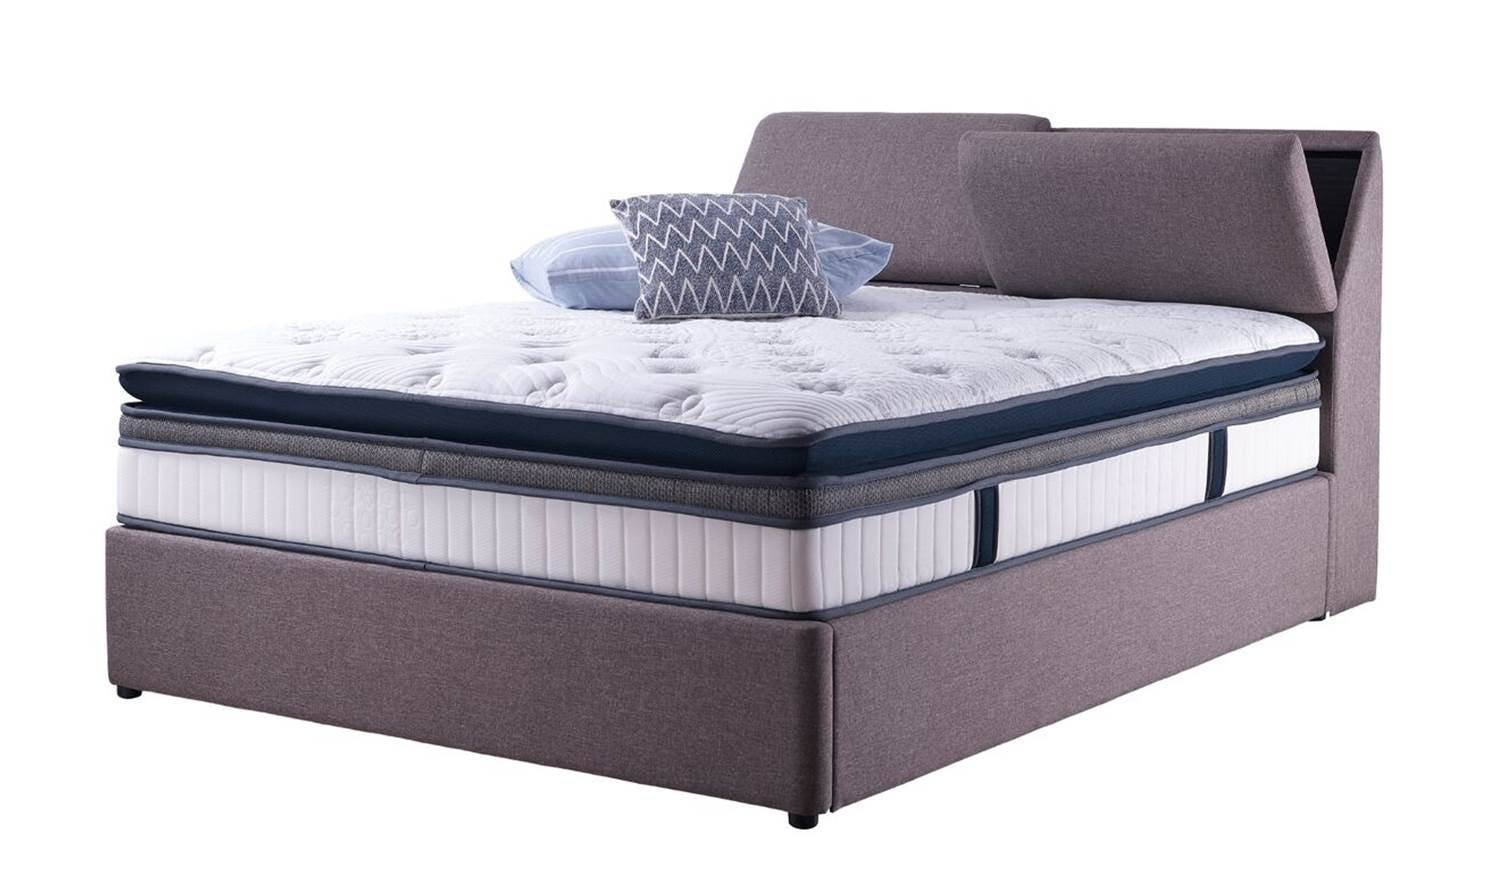 Forster Storage Bedframe Queen Size Also Available In